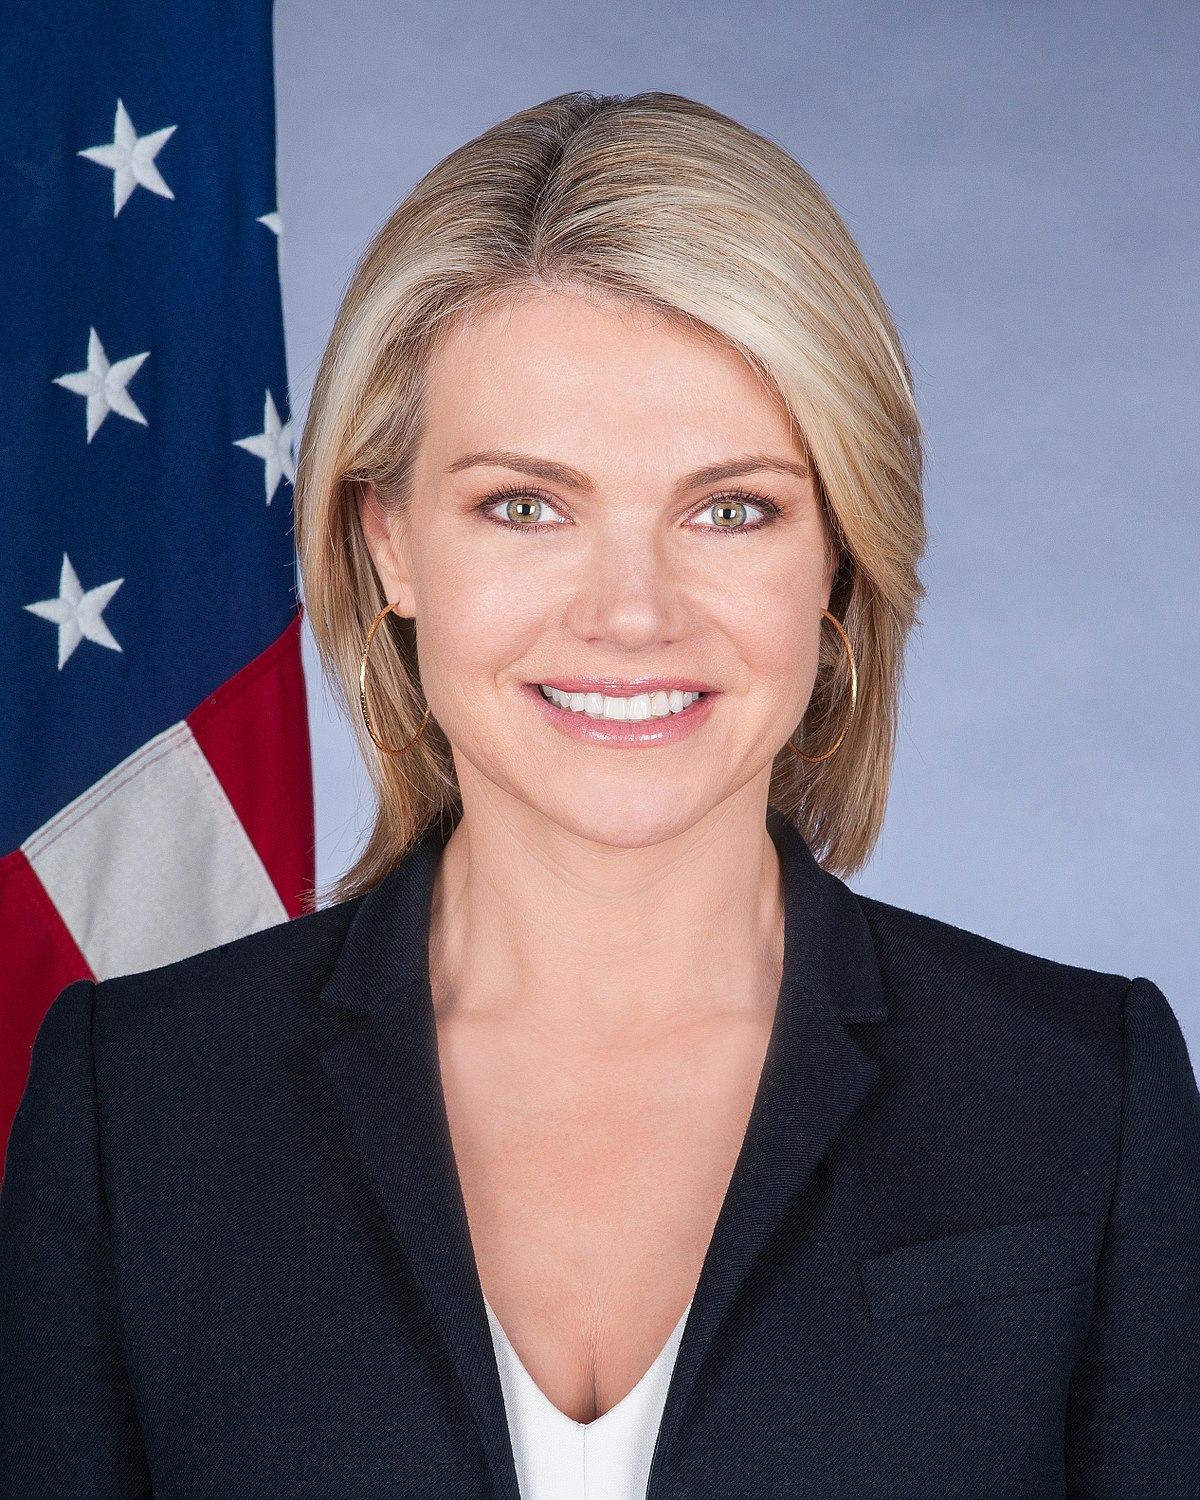 Heather Nauert - Wikipedia